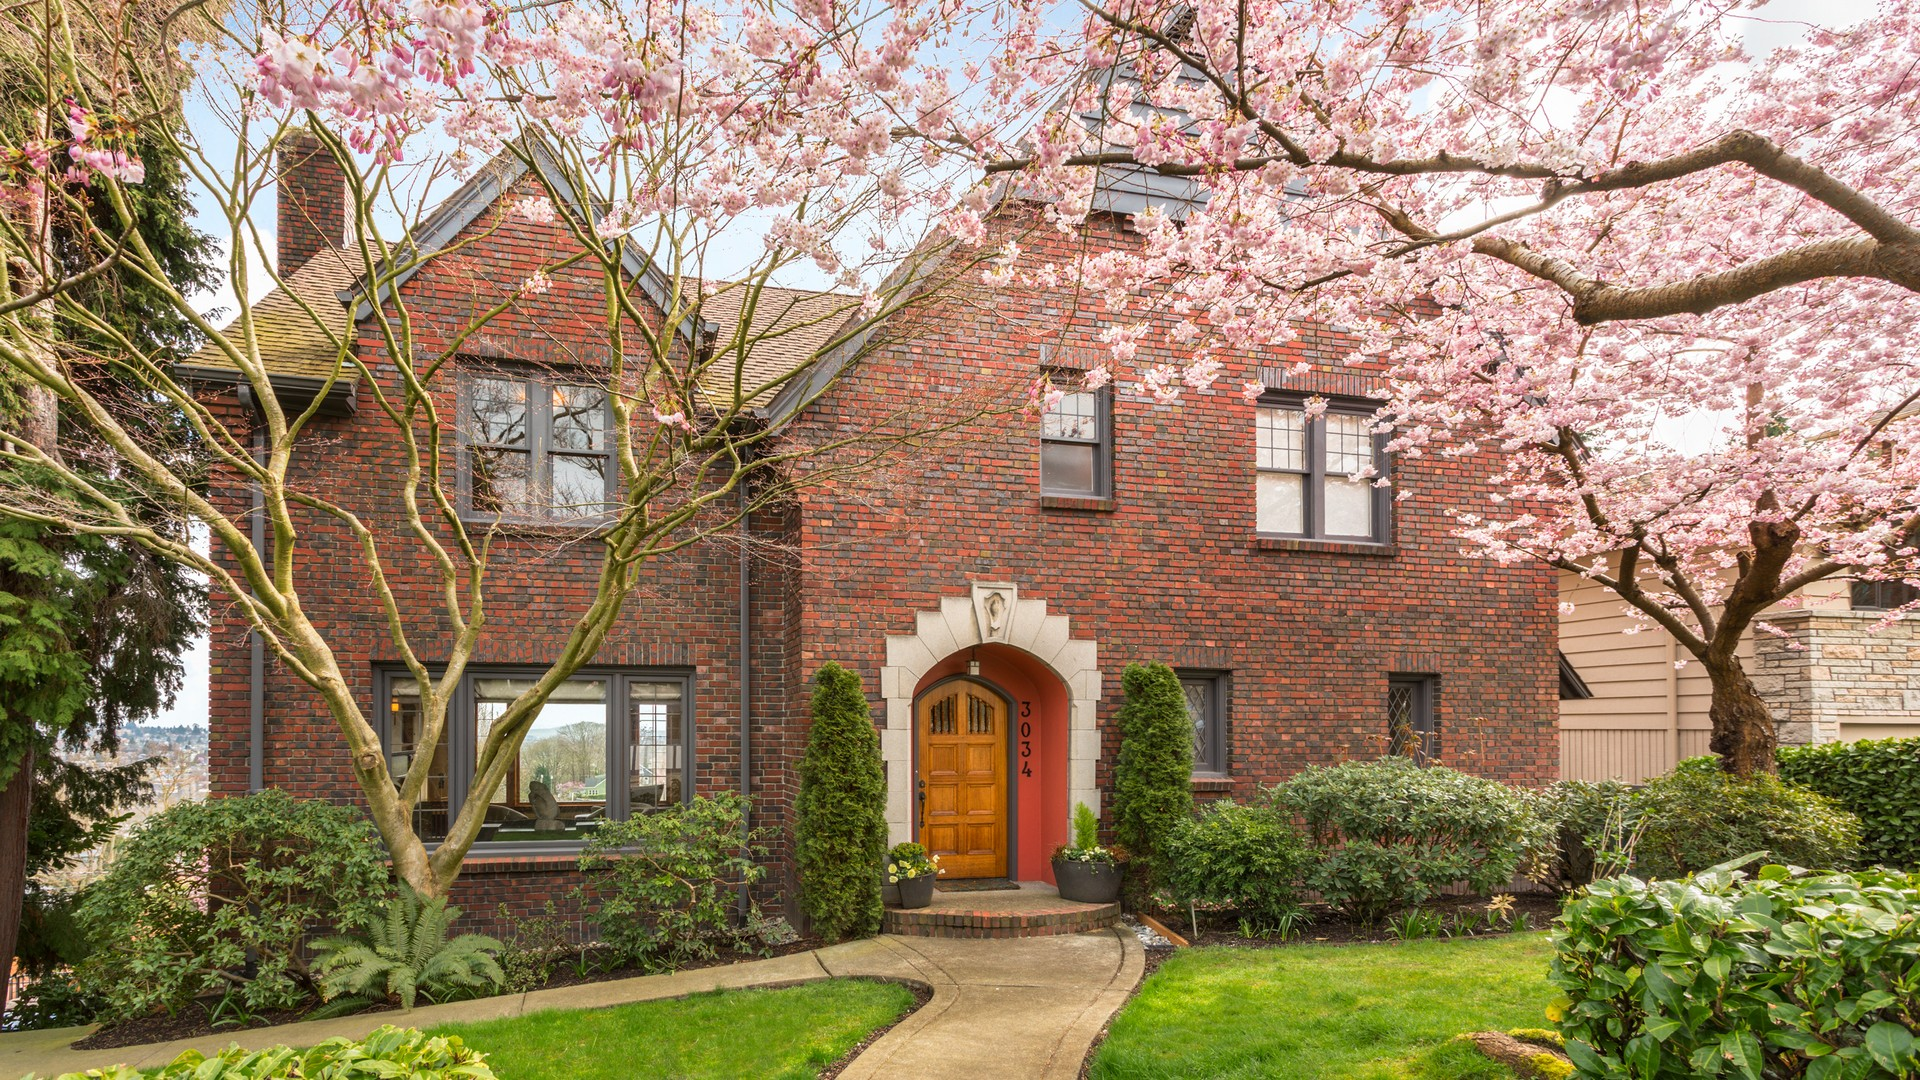 Single Family Home for Sale at Queen Anne Tudor 3034 10th Ave W Queen Anne, Seattle, Washington, 98119 United States